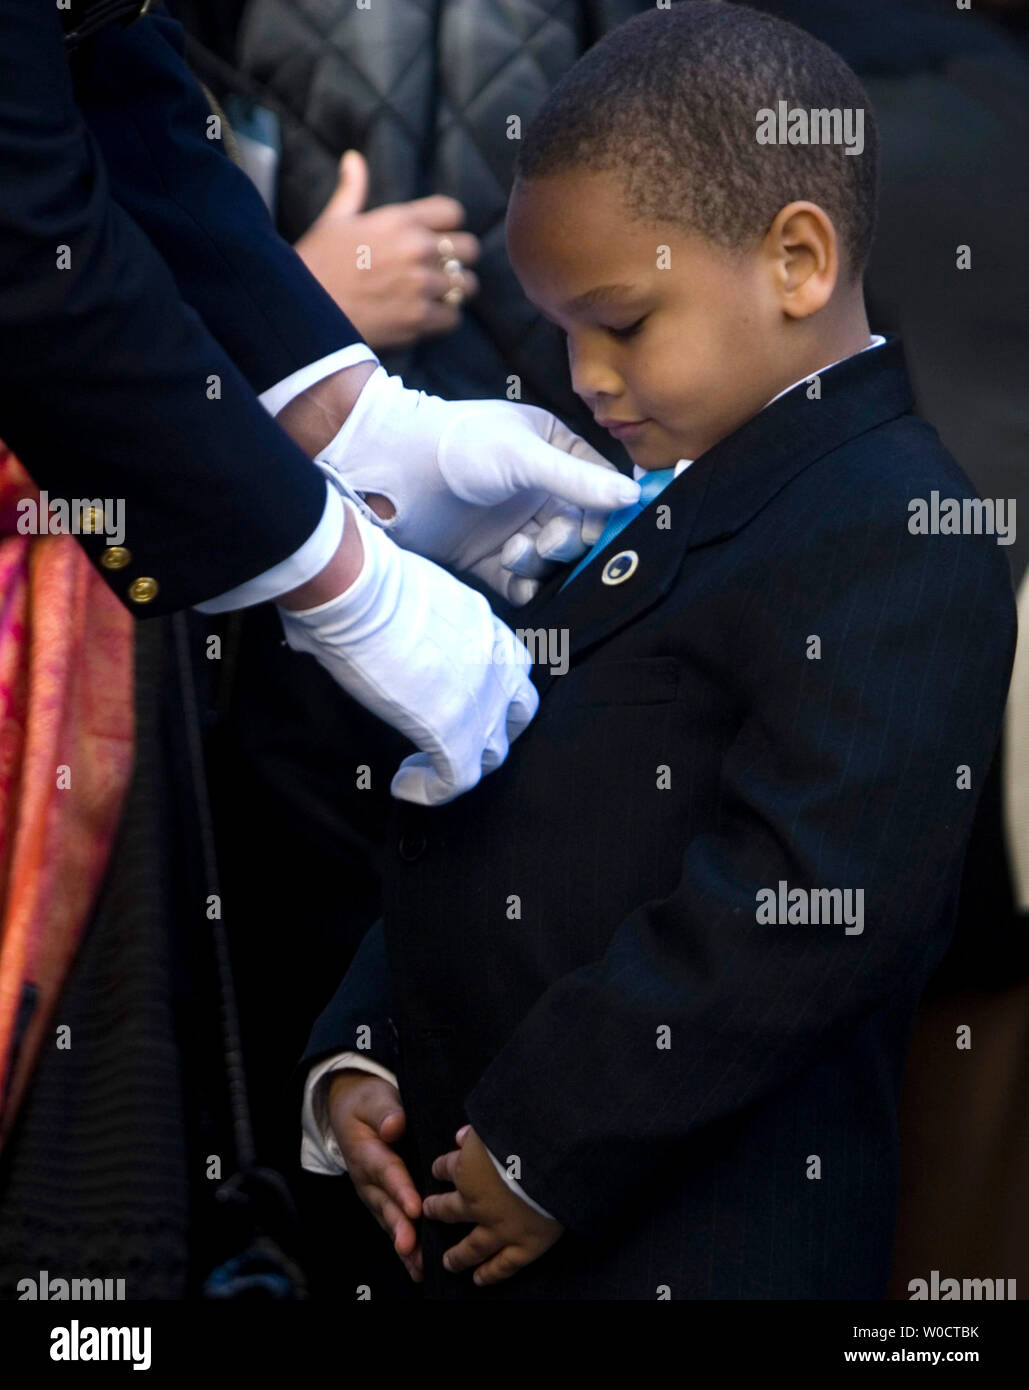 An officer helps Rosa Parks great nephew Schuyler McCauley Brown with his tie before the funeral service for Parks at the Metropolitan AME Church October 31, 2005 in Washington, DC. More than 30,000 people at the U.S. Capitol Rotunda passed by the casket of the woman who refused to give up her seat to a white man on a Montgomery, Alabama city bus in 1955, sparking the American civil rights movement. (UPI Photo/Kamenko Pajic) Stock Photo